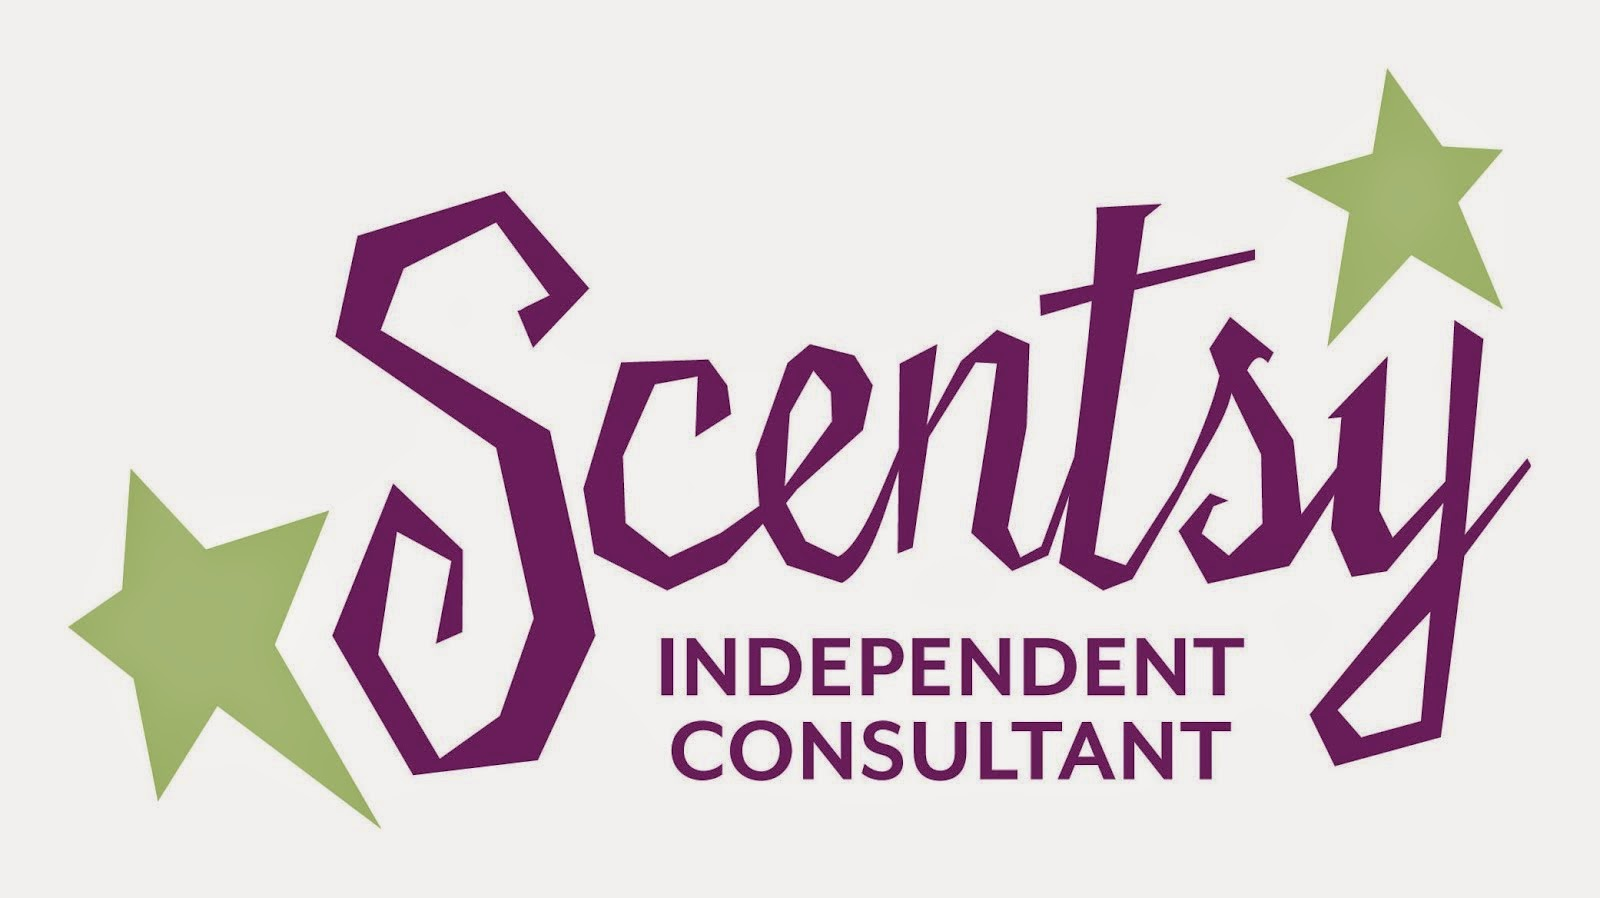 To order Scentsy